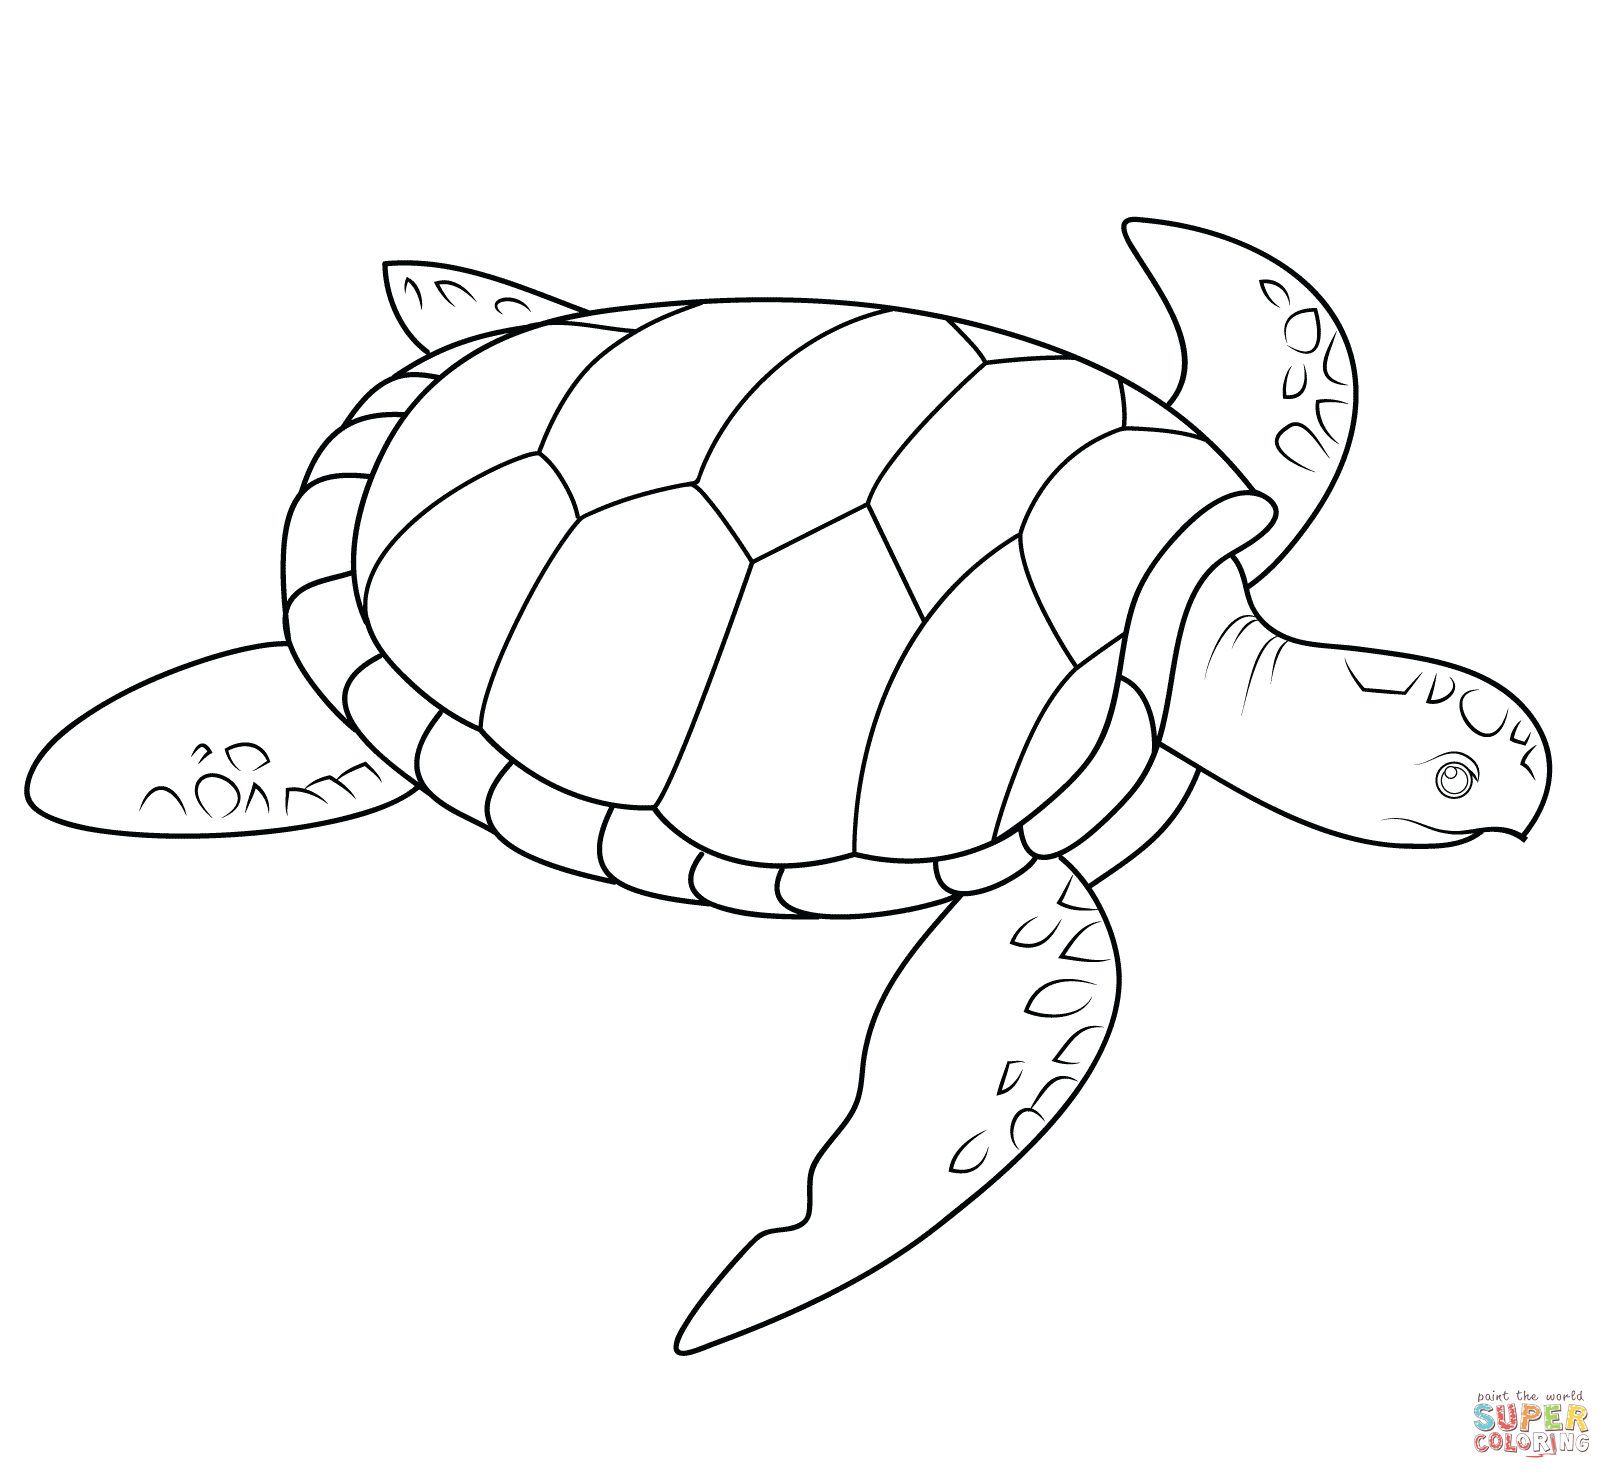 turtle pictures to color coloring pages turtles free printable coloring pages to pictures color turtle